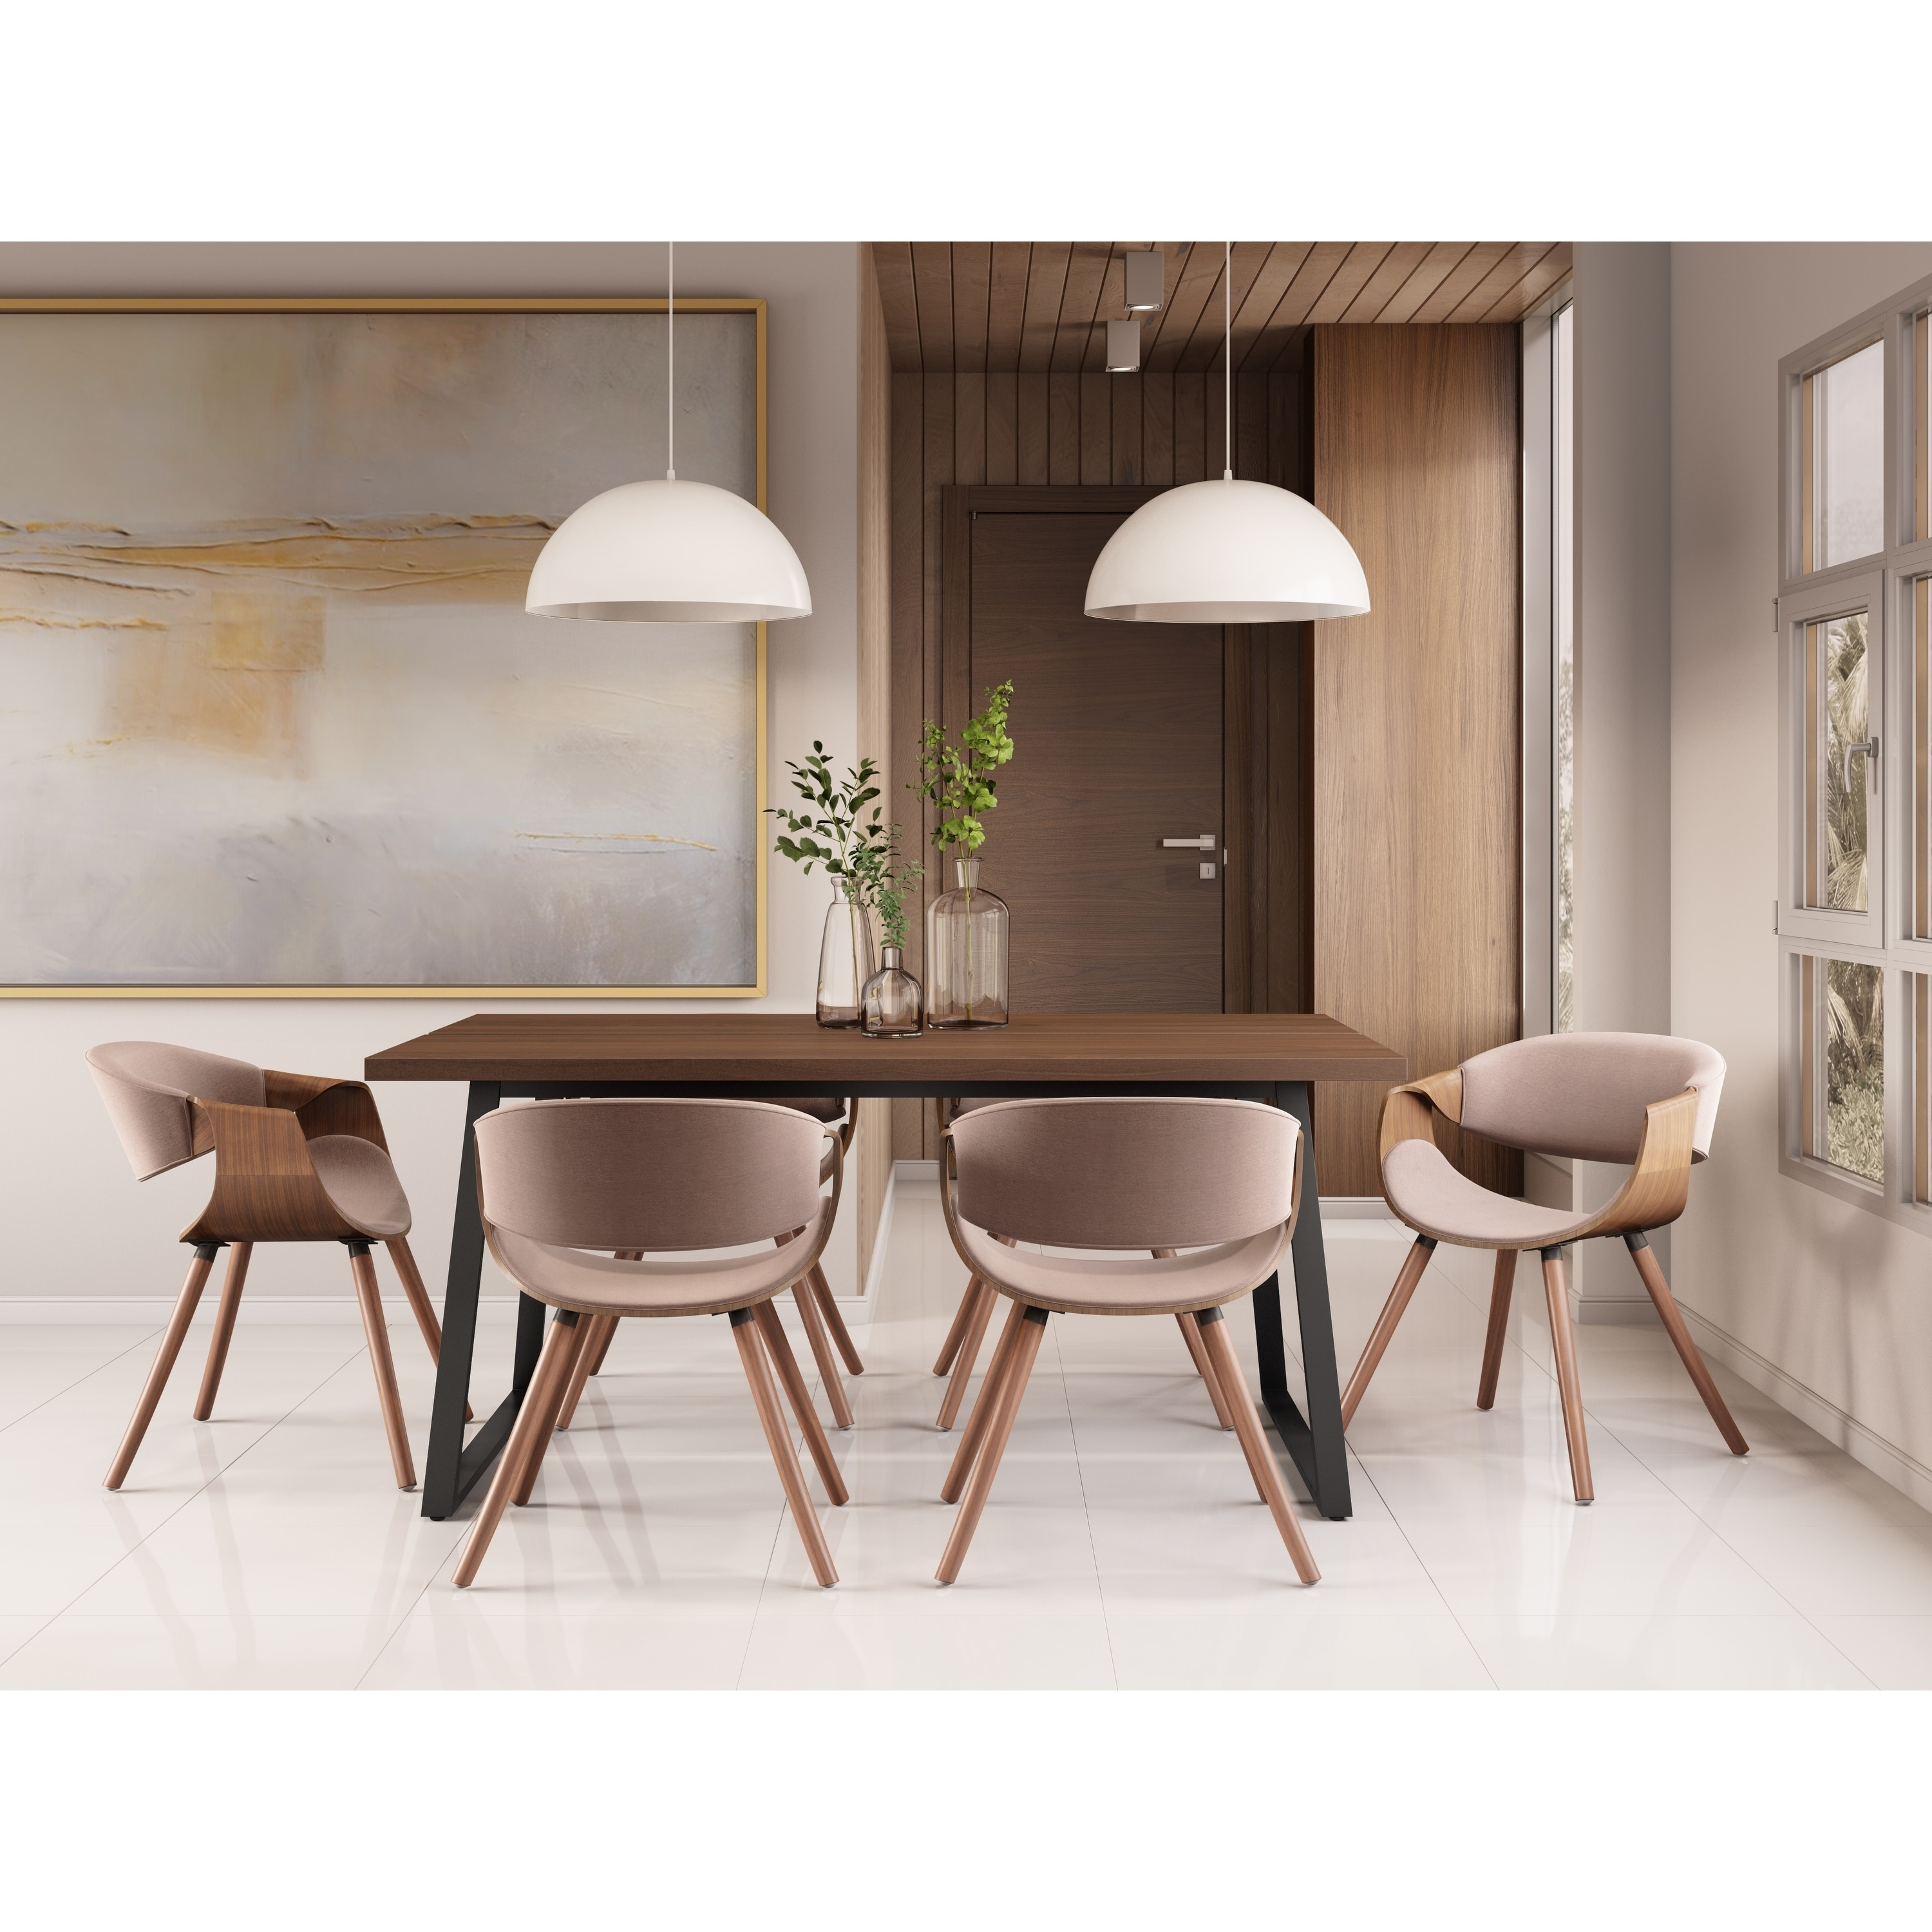 Wyndenhall Braydon Mid Century Modern 7 Pc Dining Set With 6 Upholstered Bentwood Dining Chairs And 66 Inch Wide Table Overstock 28996086